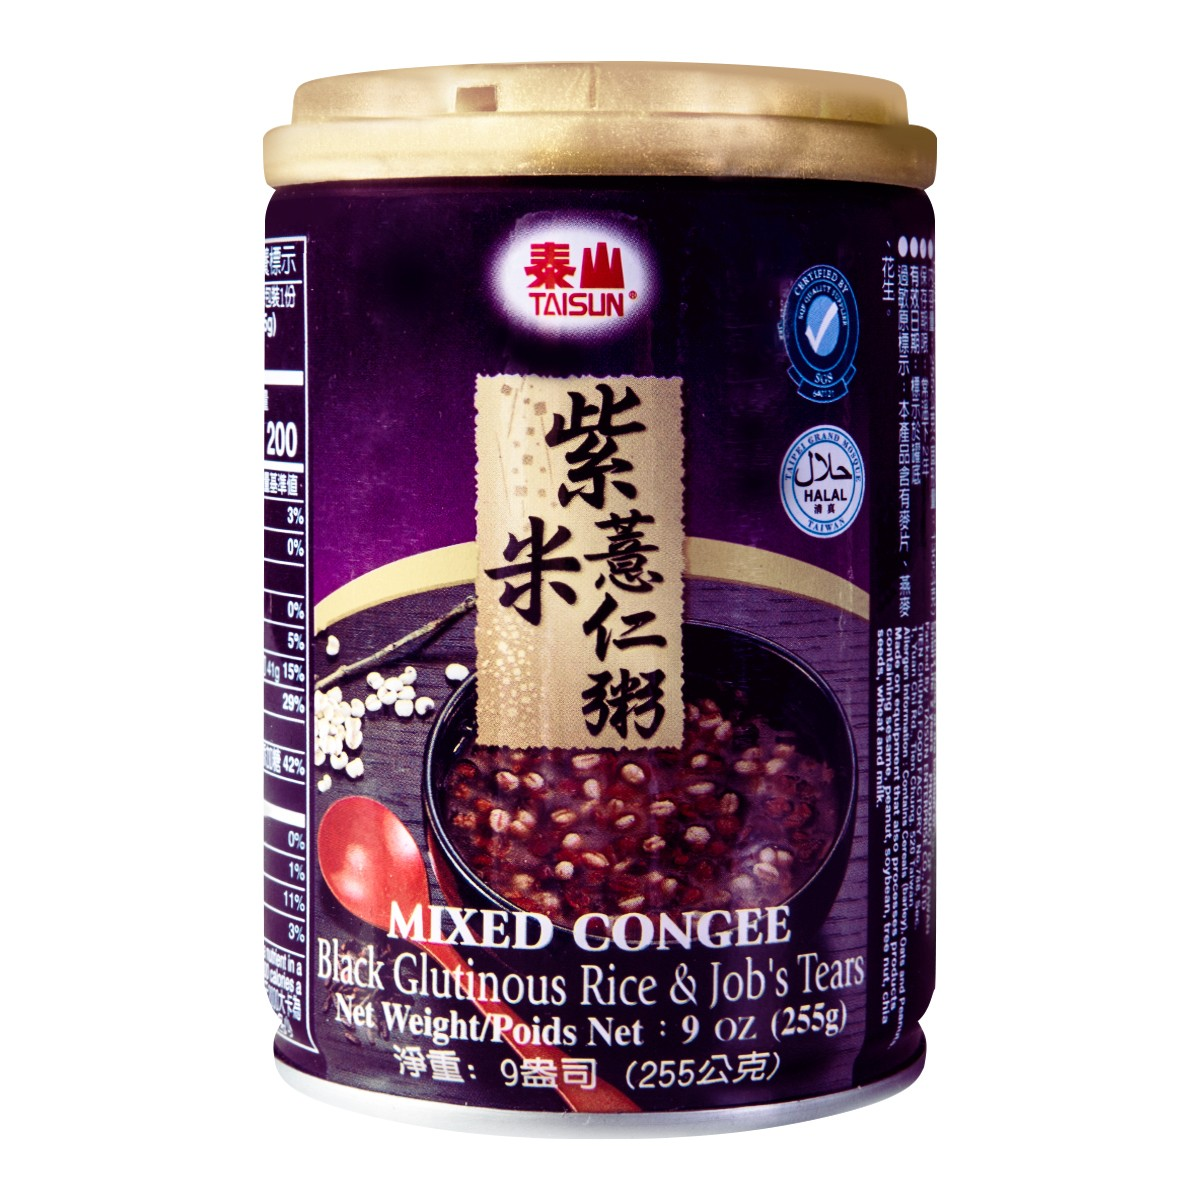 TAISUN MIXED CONGEE~BLACK GLUTINOUS RICE & JOB'S TEARS 255g